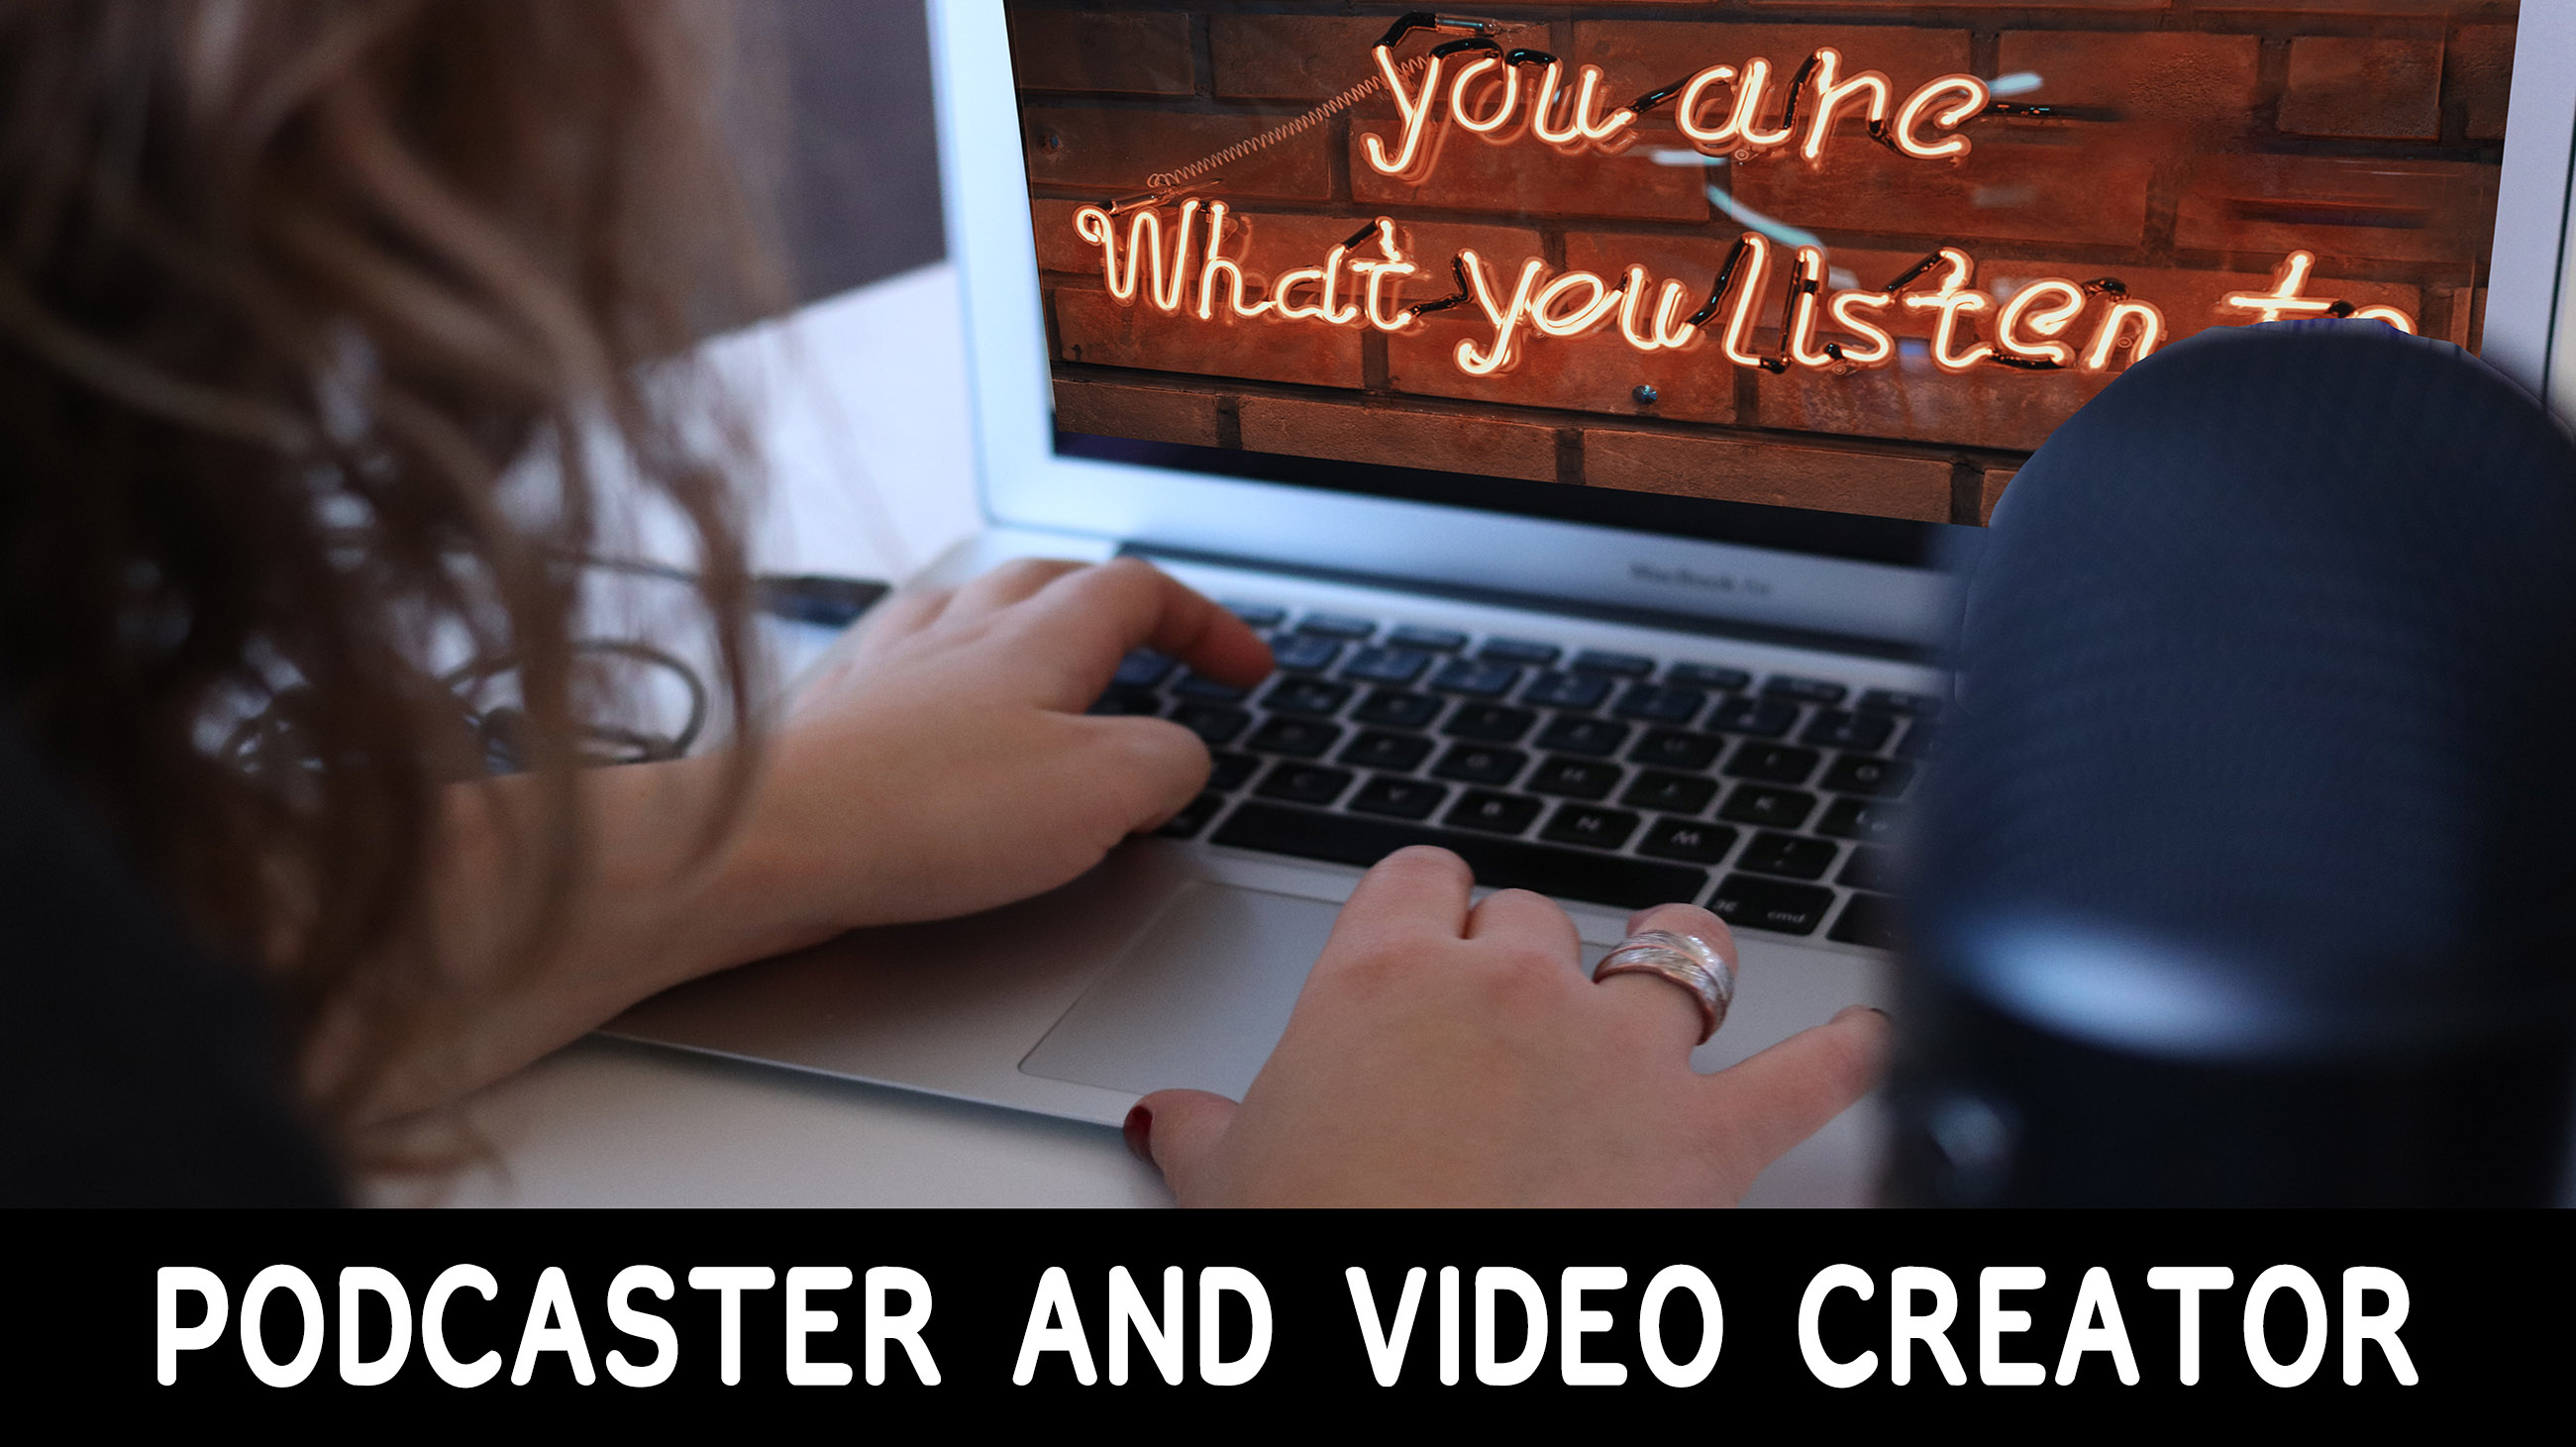 Podcaster and Video Creator